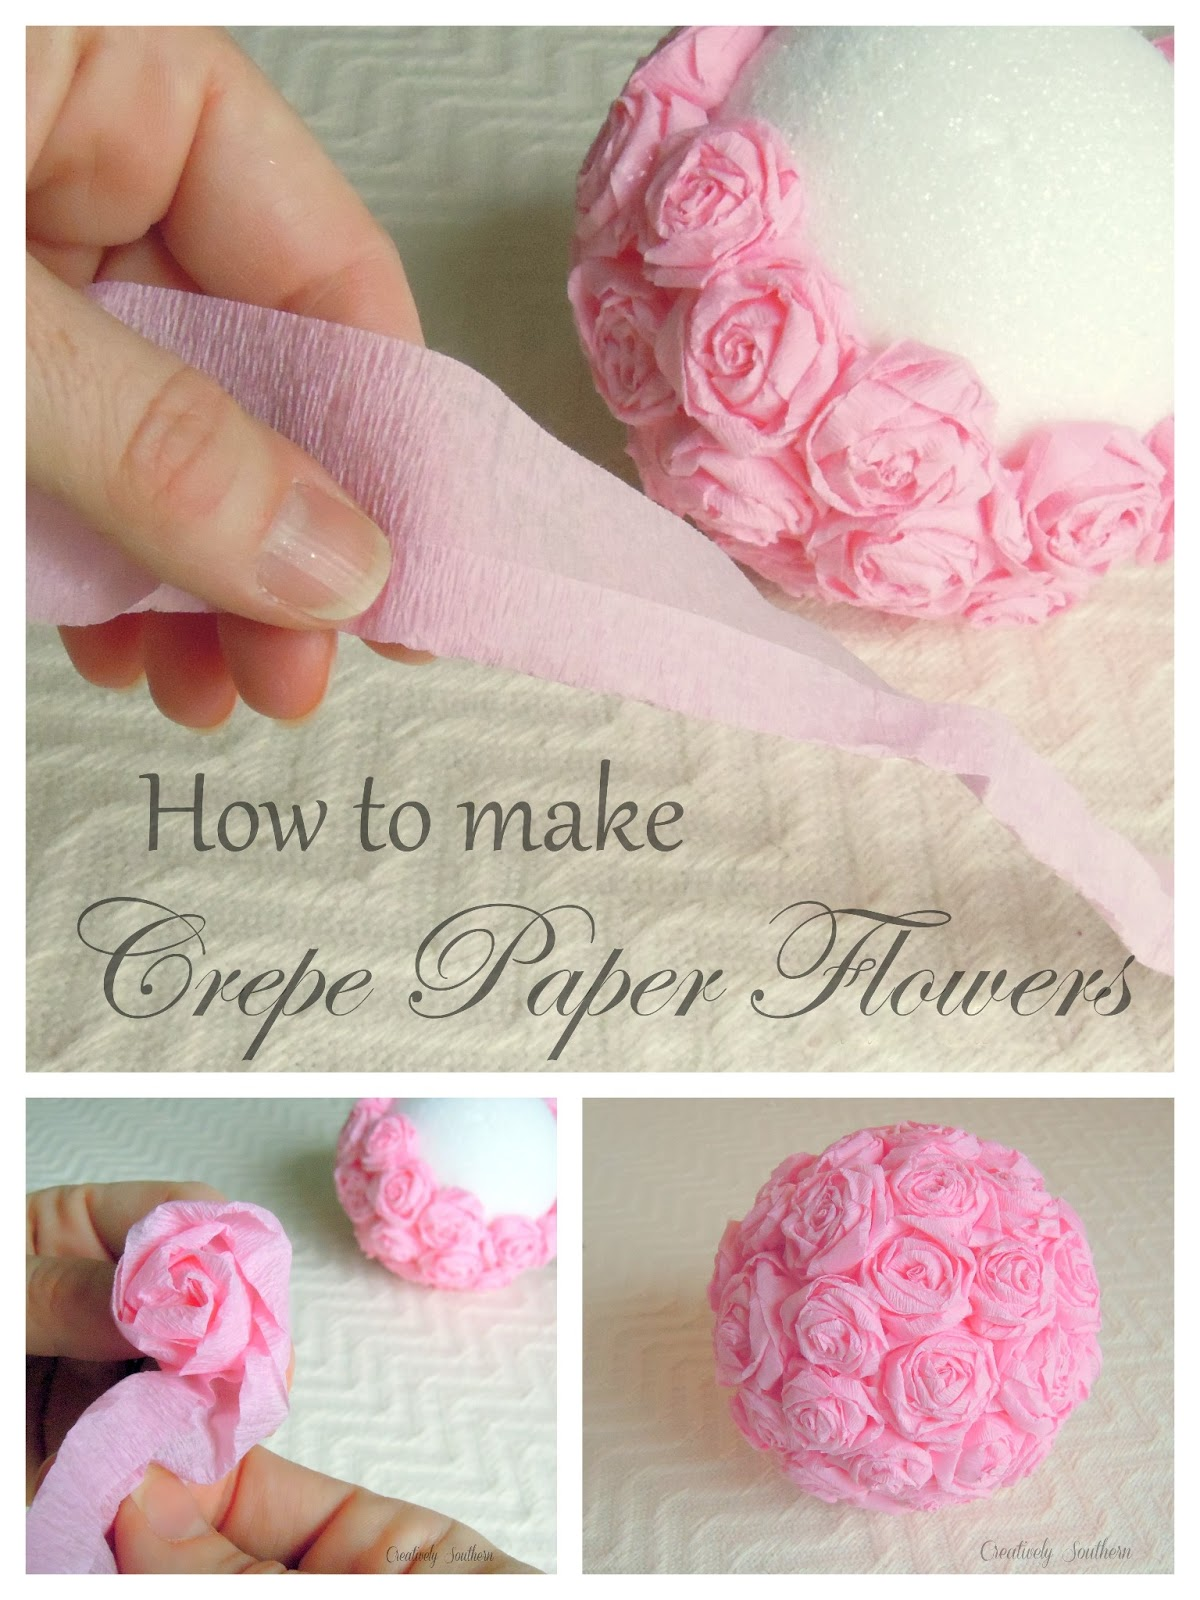 Small paper flowers craft - Crepe Paper Flowers Craft Idea